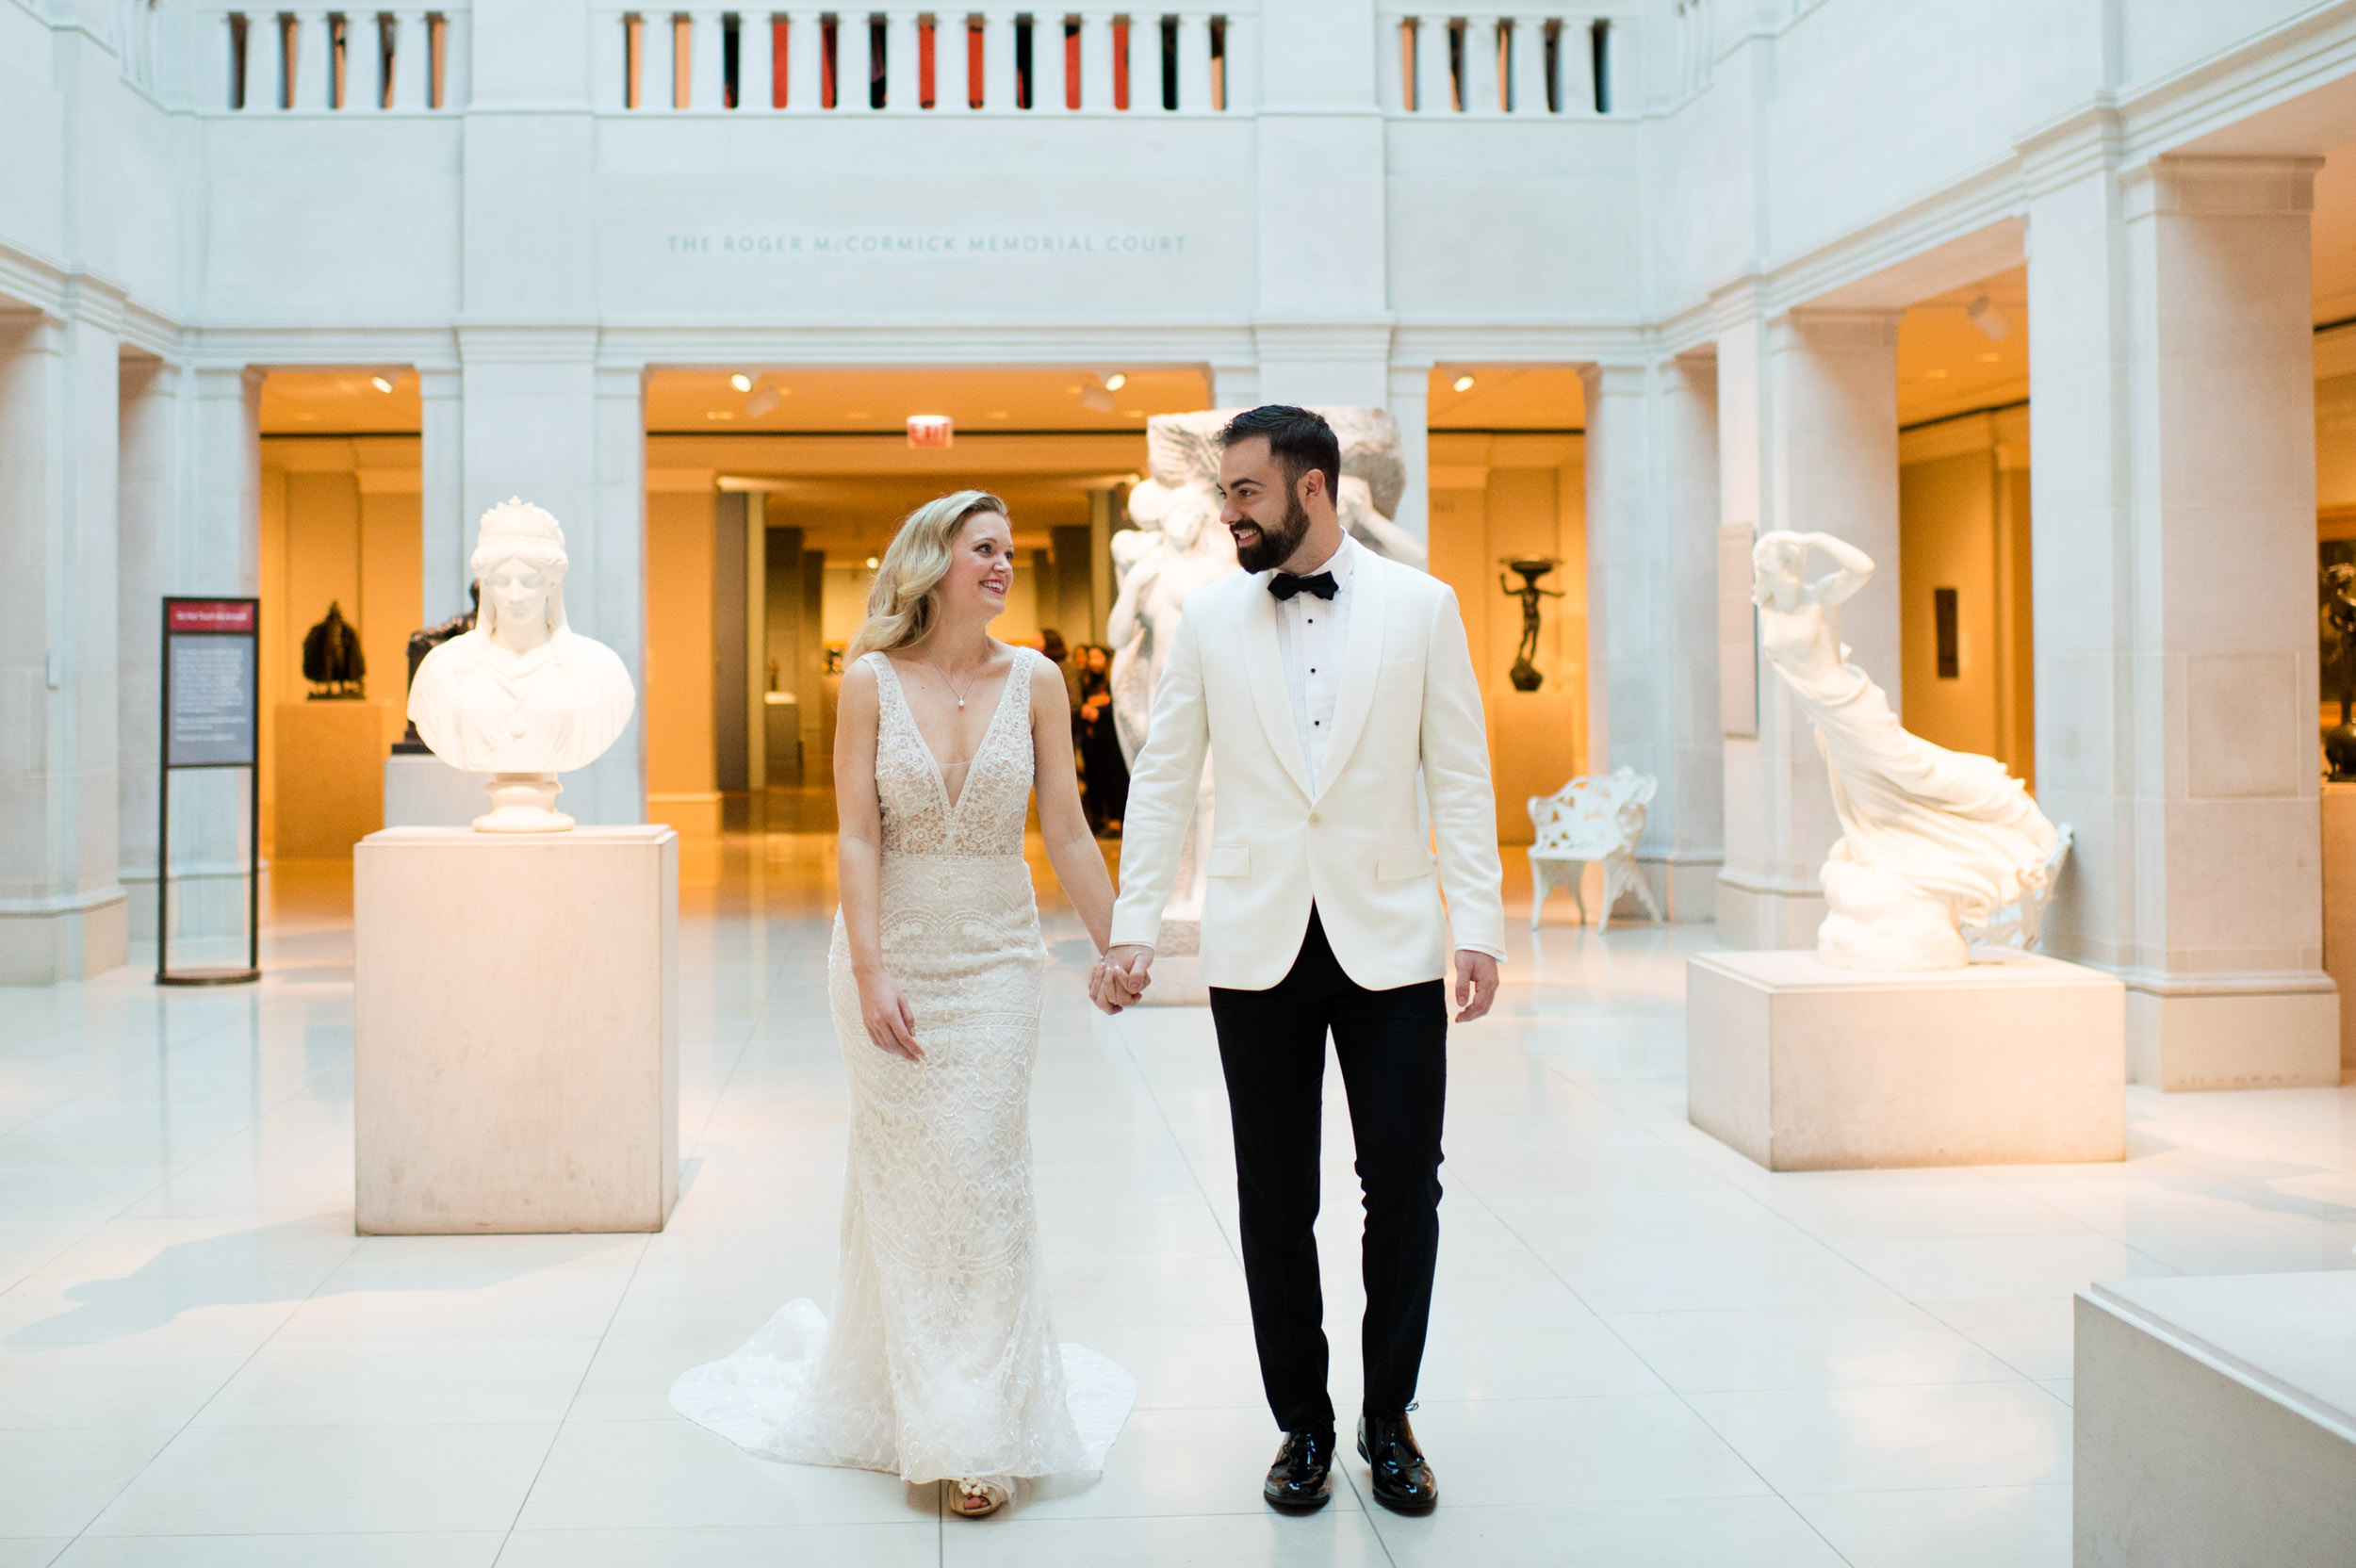 Wedding portraits at Art Institute of Chicago